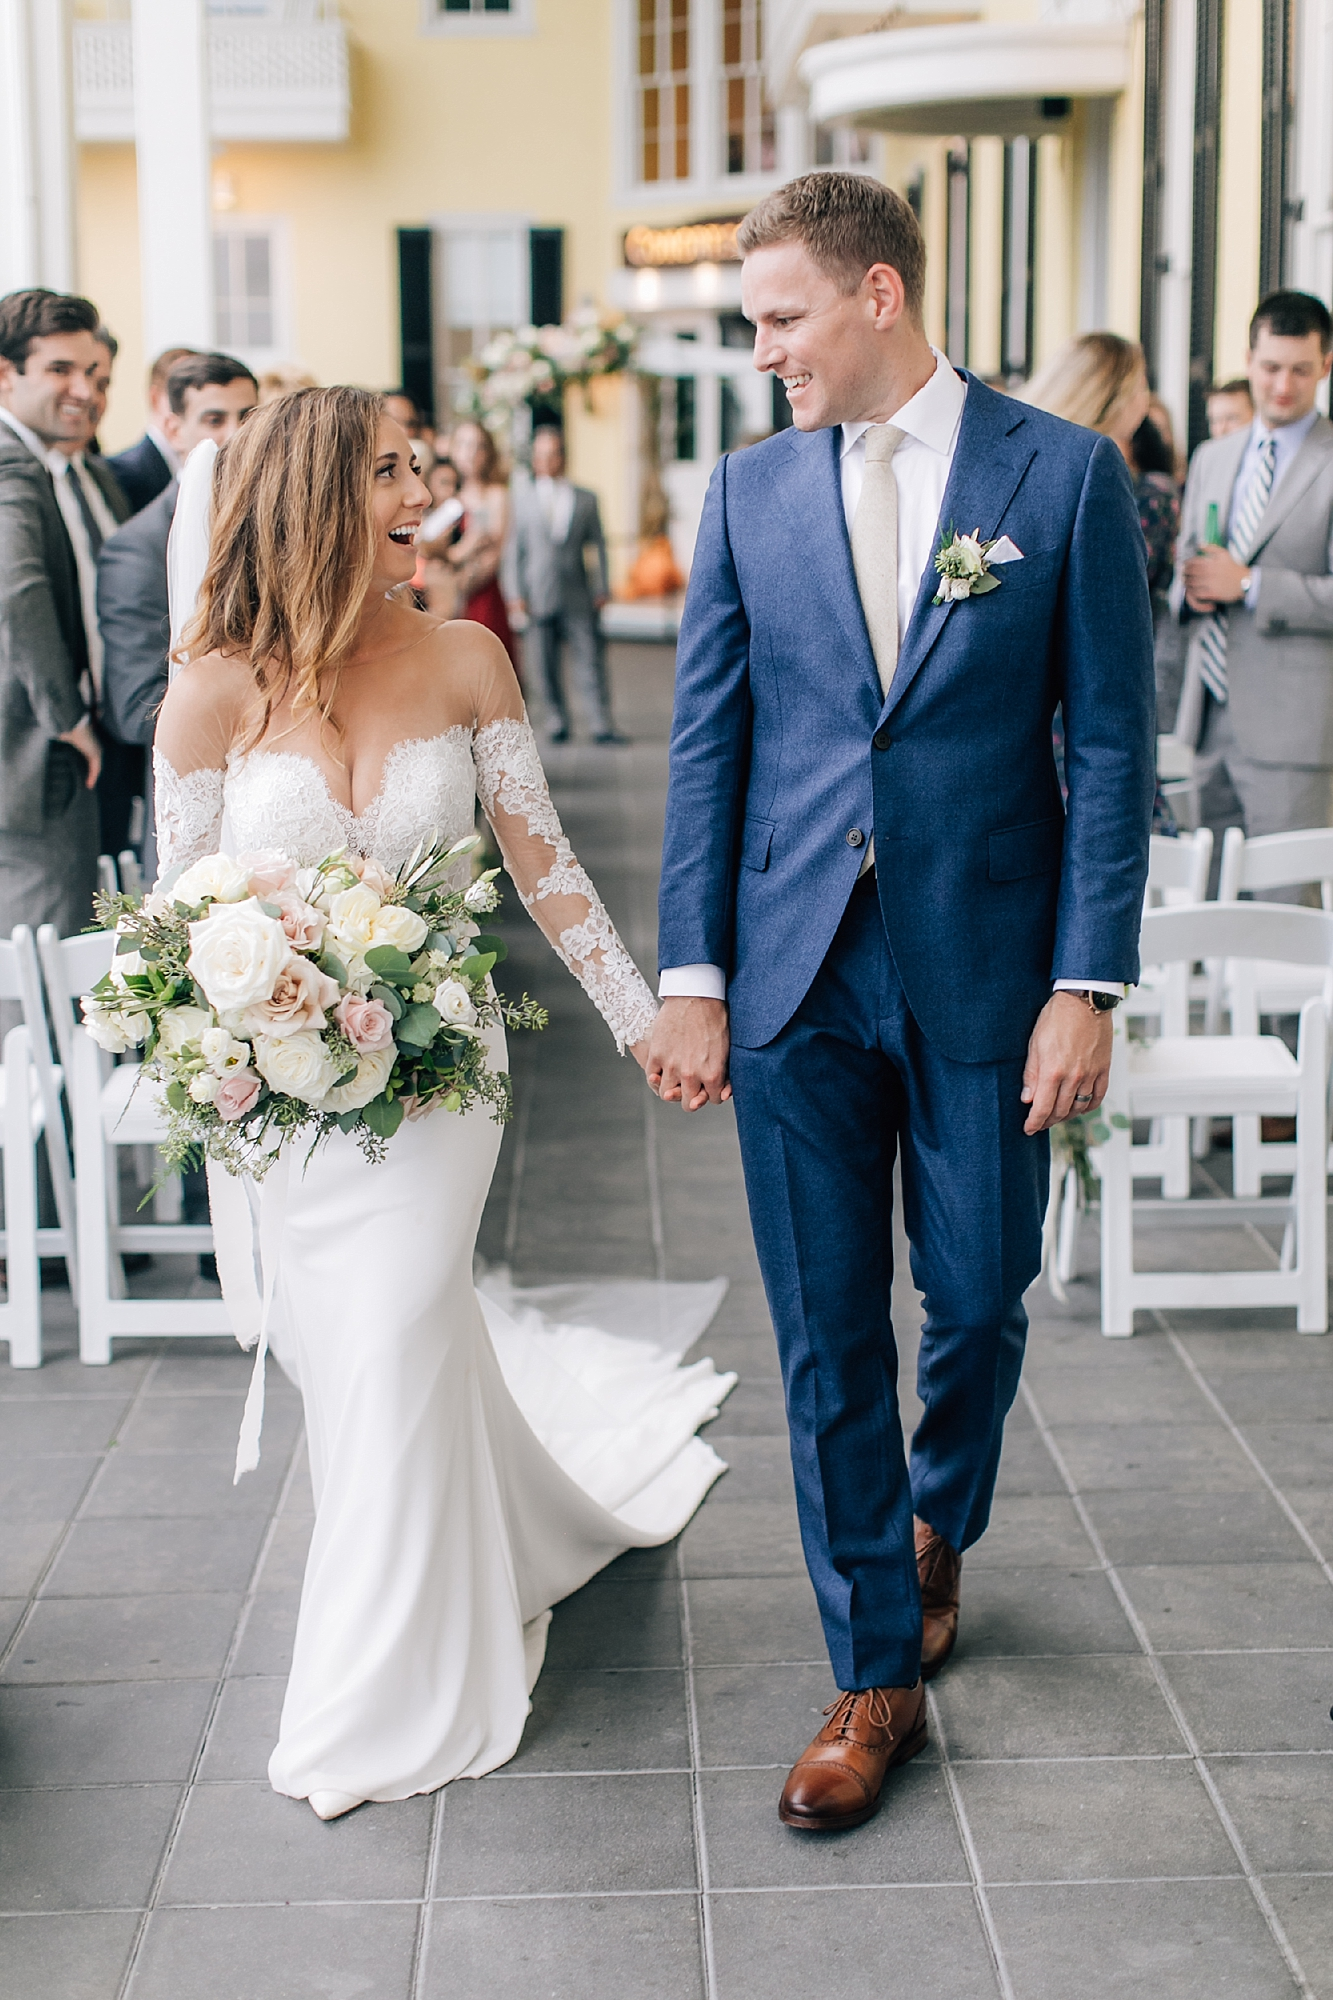 Intimate and Joyful Wedding Photography in Cape May NJ by Magdalena Studios 0039 4